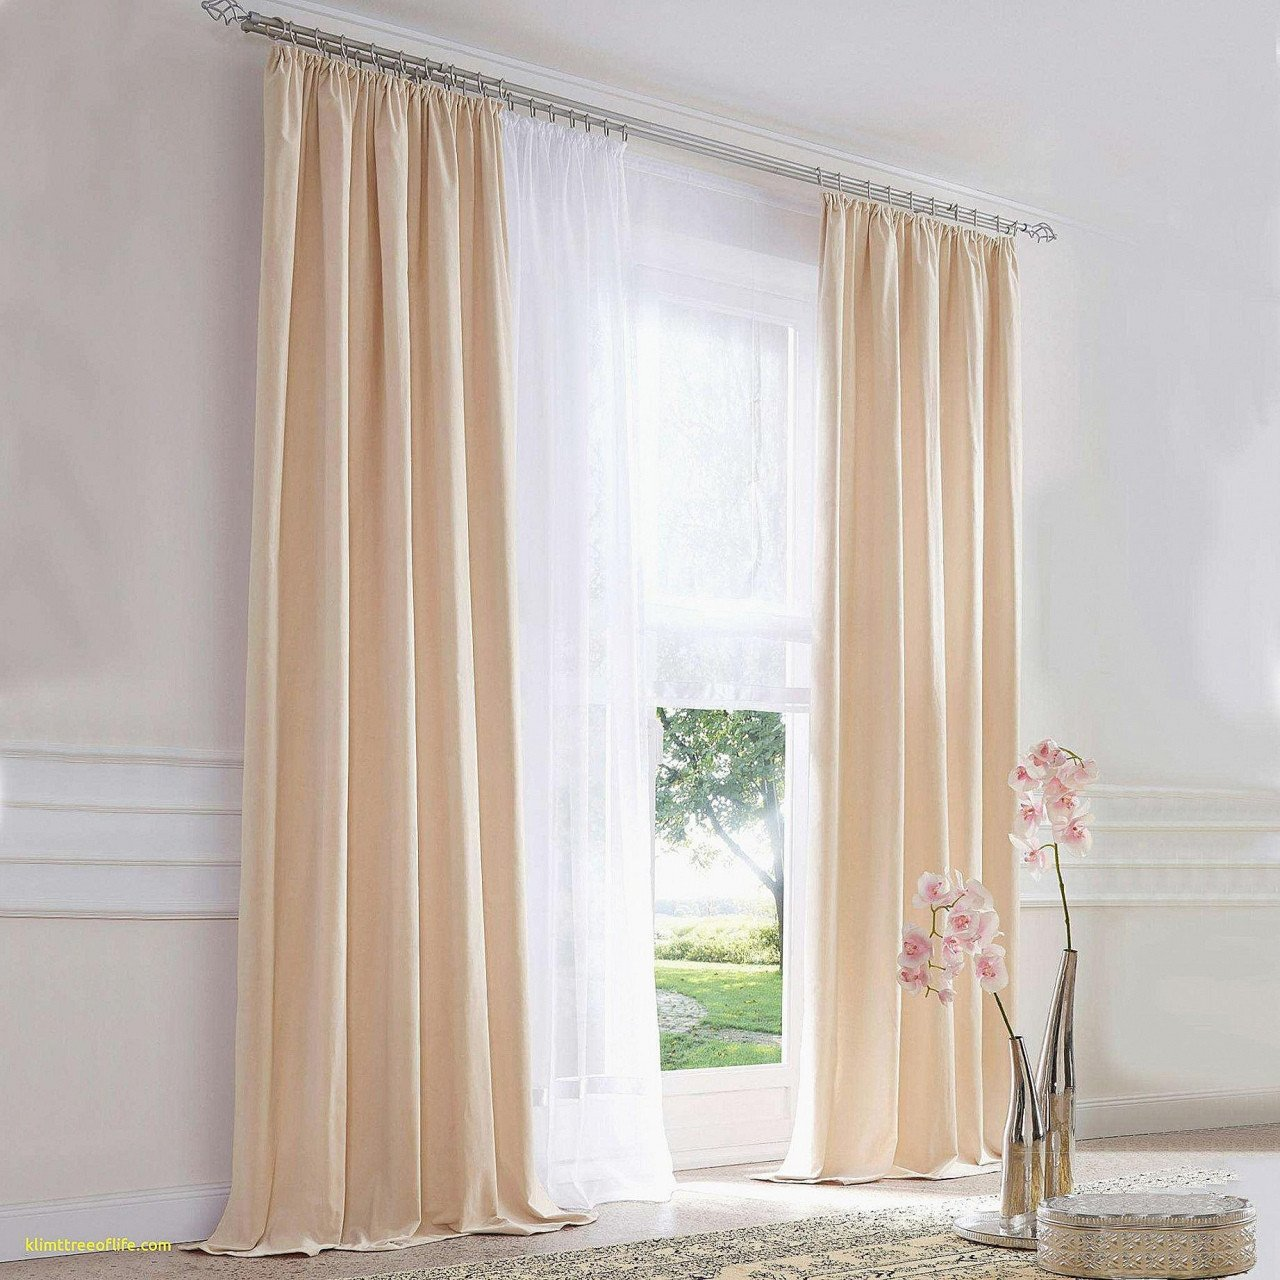 Best Curtains for Bedroom Luxury Bedroom Curtain Ideas — Procura Home Blog